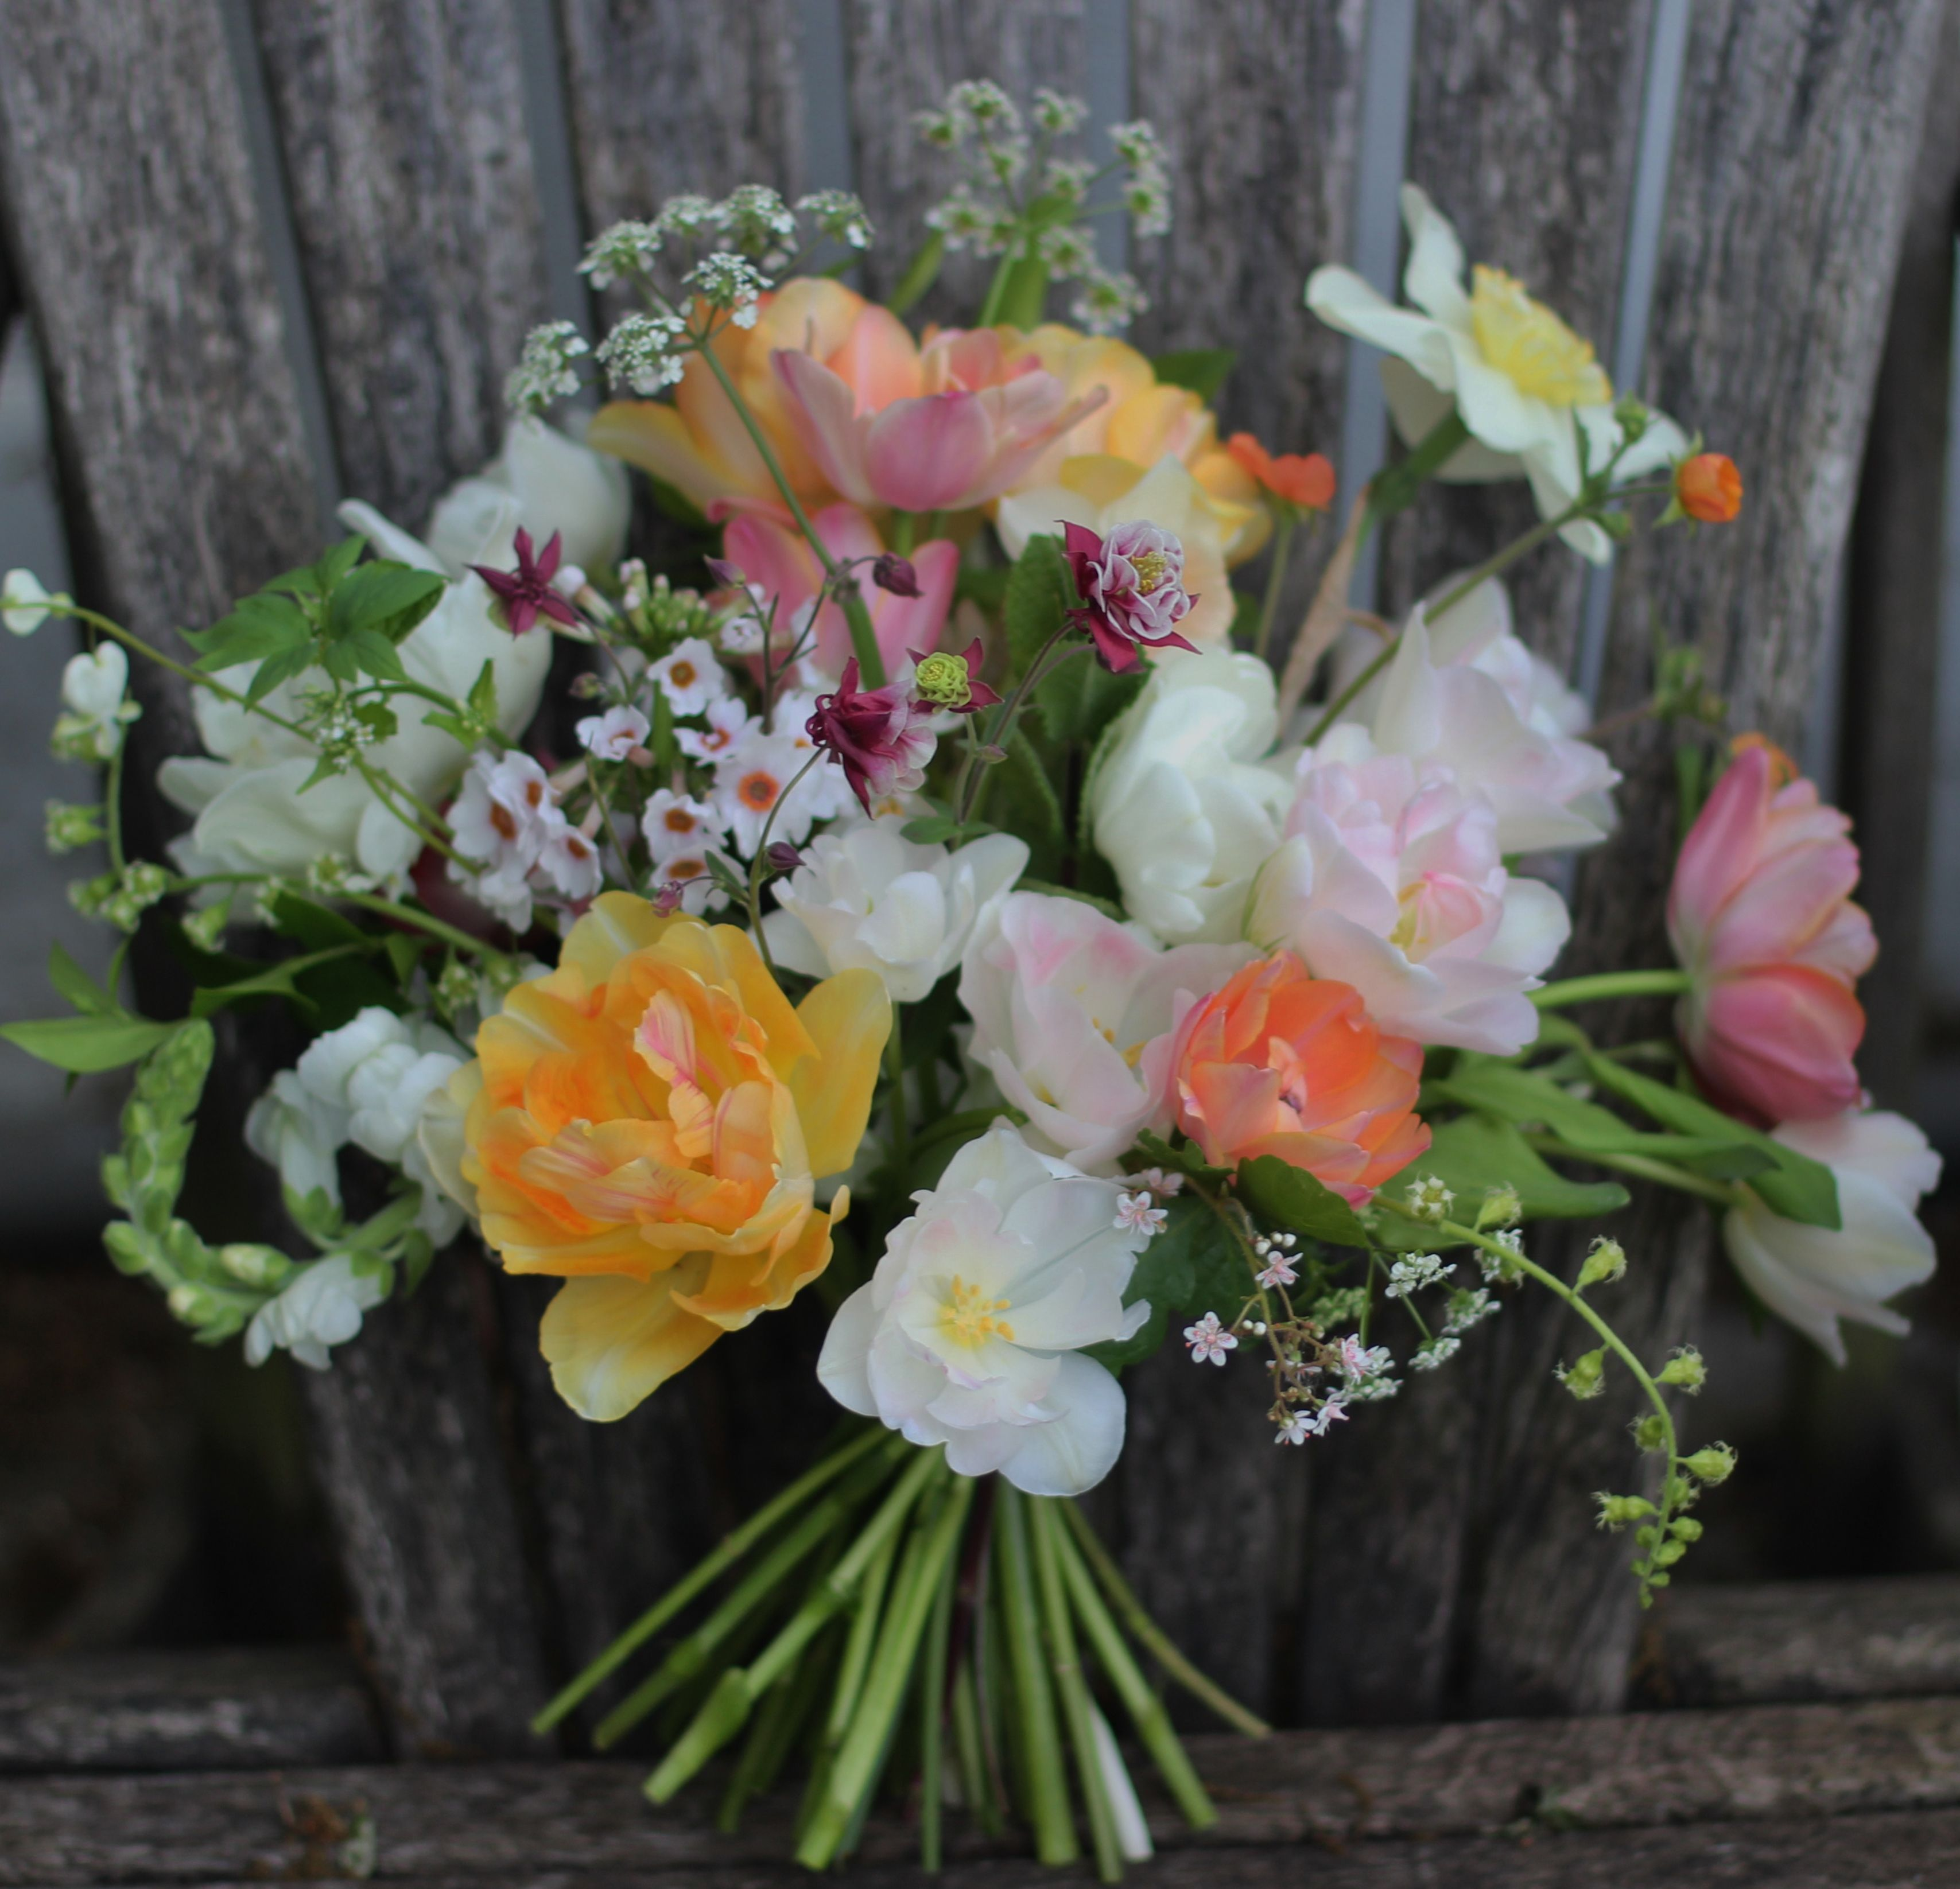 Lock Cottage Flowers Surrey UK Spring Garden Bouquet